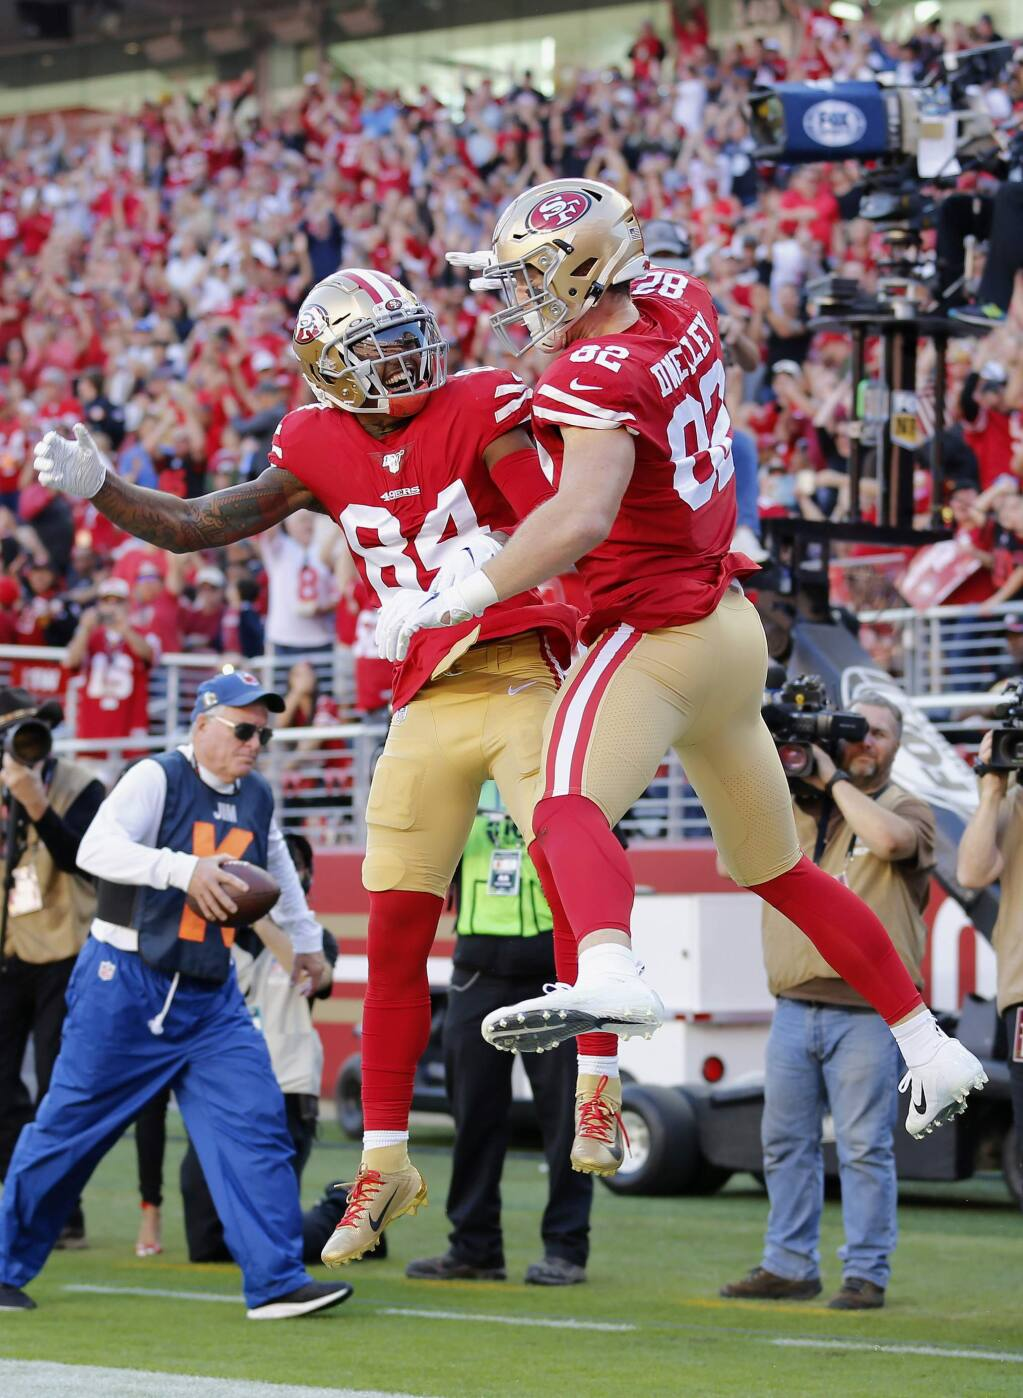 San Francisco 49ers tight end Ross Dwelley, right, is congratulated by wide receiver Kendrick Bourne after scoring against the Arizona Cardinals during the first half of an NFL football game in Santa Clara, Calif., Sunday, Nov. 17, 2019. (AP Photo/Josie Lepe)